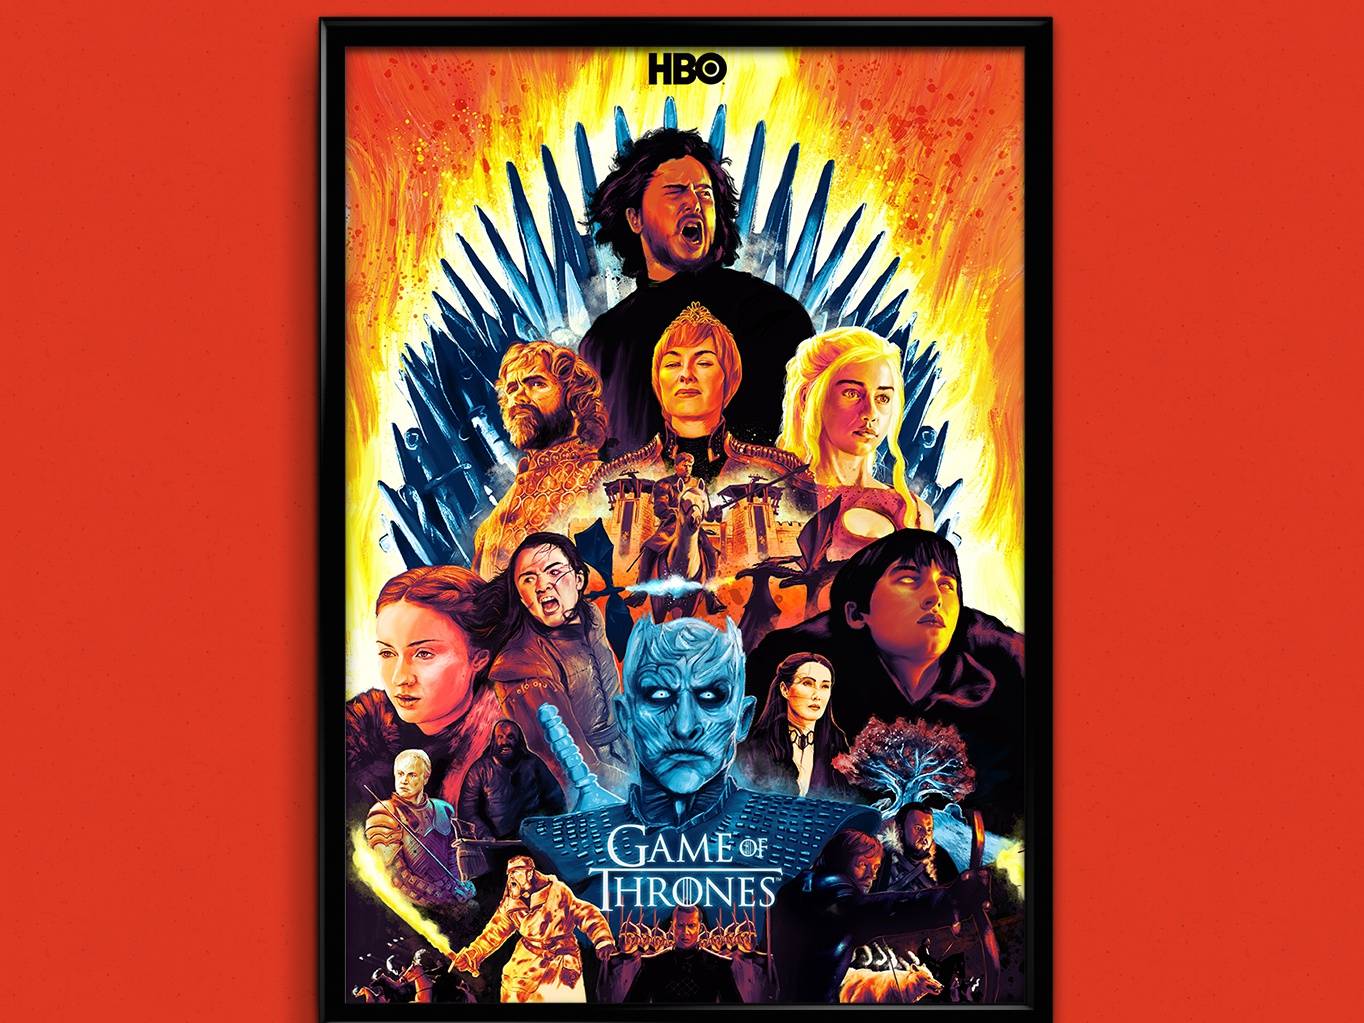 GOT Tribute Poster designs movie poster tv series hbo graphic graphics gameofthrones digital illustration game of thrones design graphic design poster a day poster design poster art posters poster digital digital art marketing agency illustration